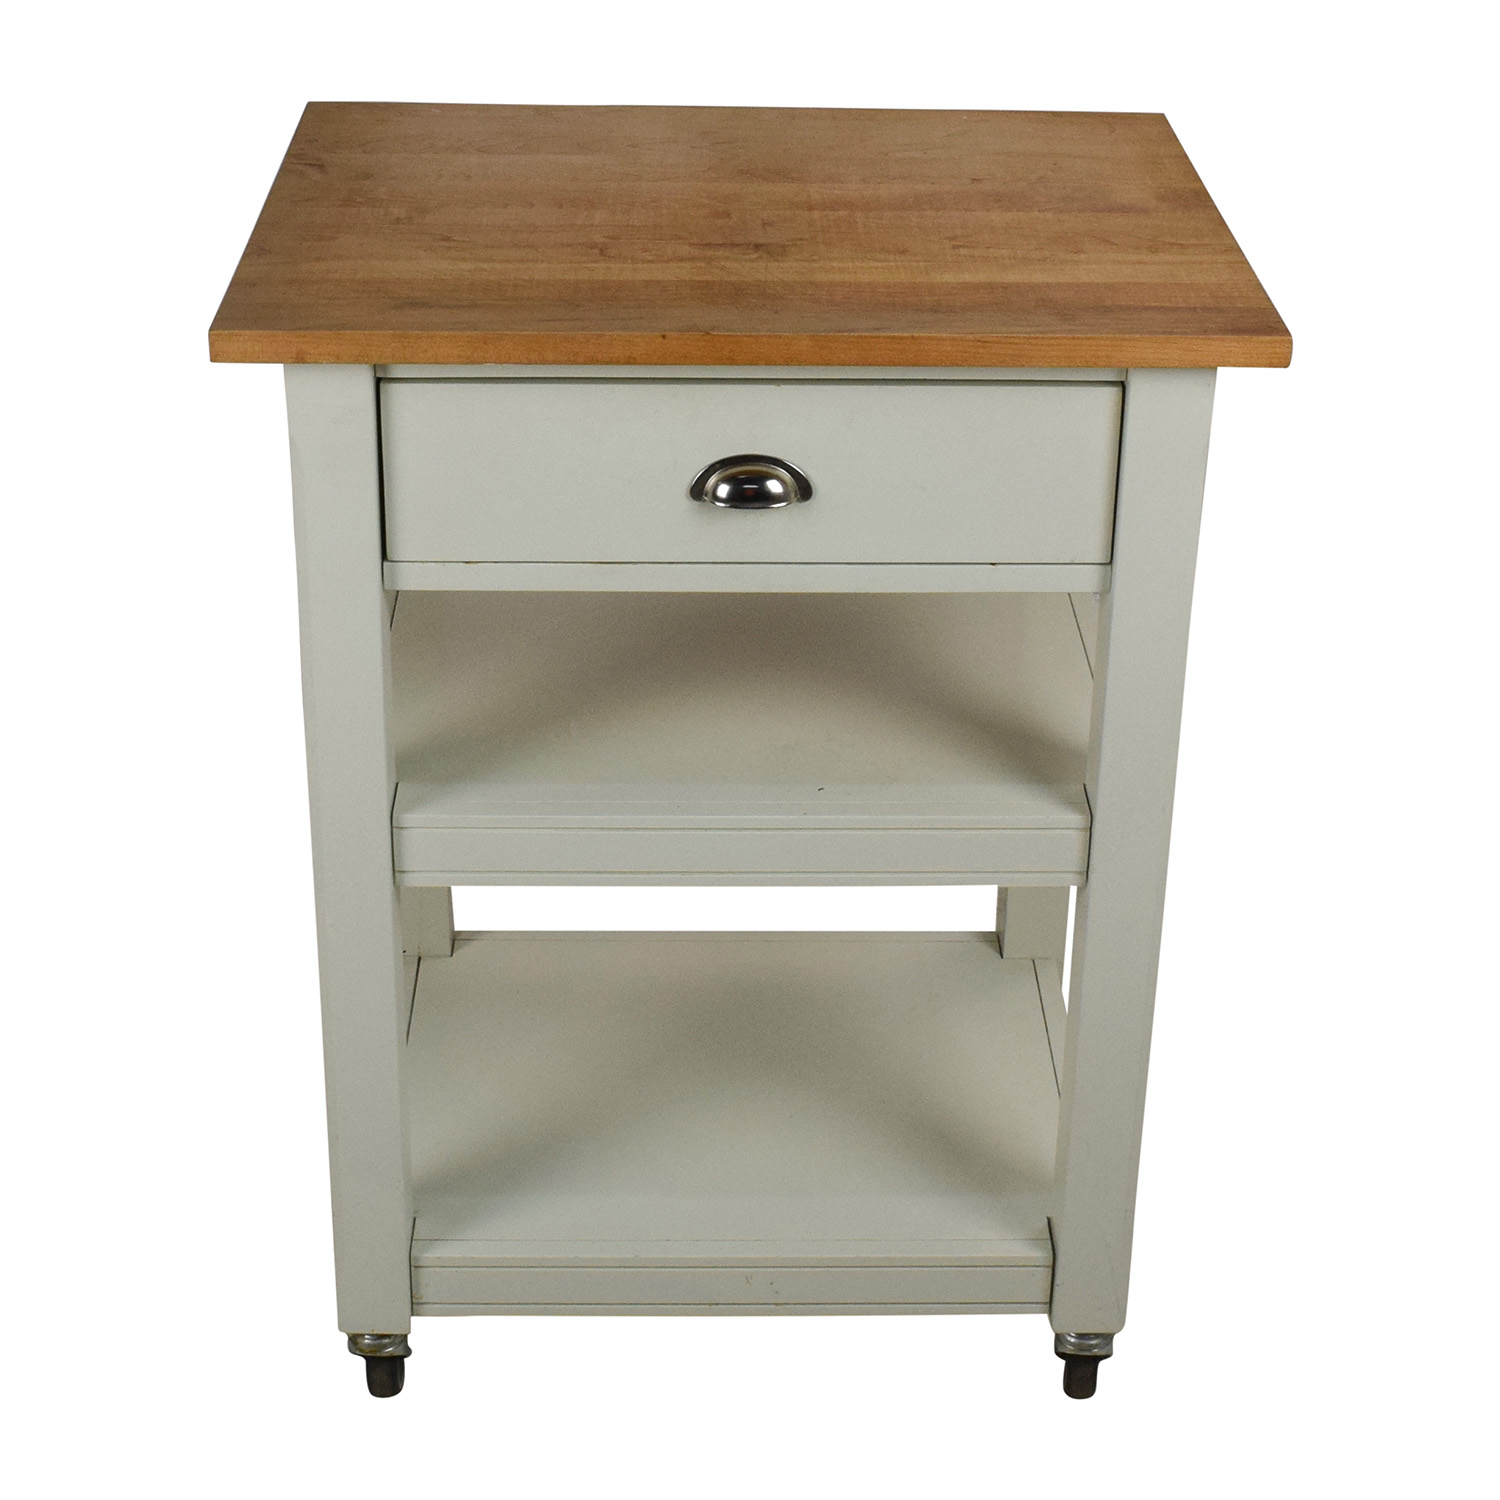 second hand rolling kitchen cart with cutting board kitchen cutting table Rolling Kitchen Cart with Cutting Board nyc